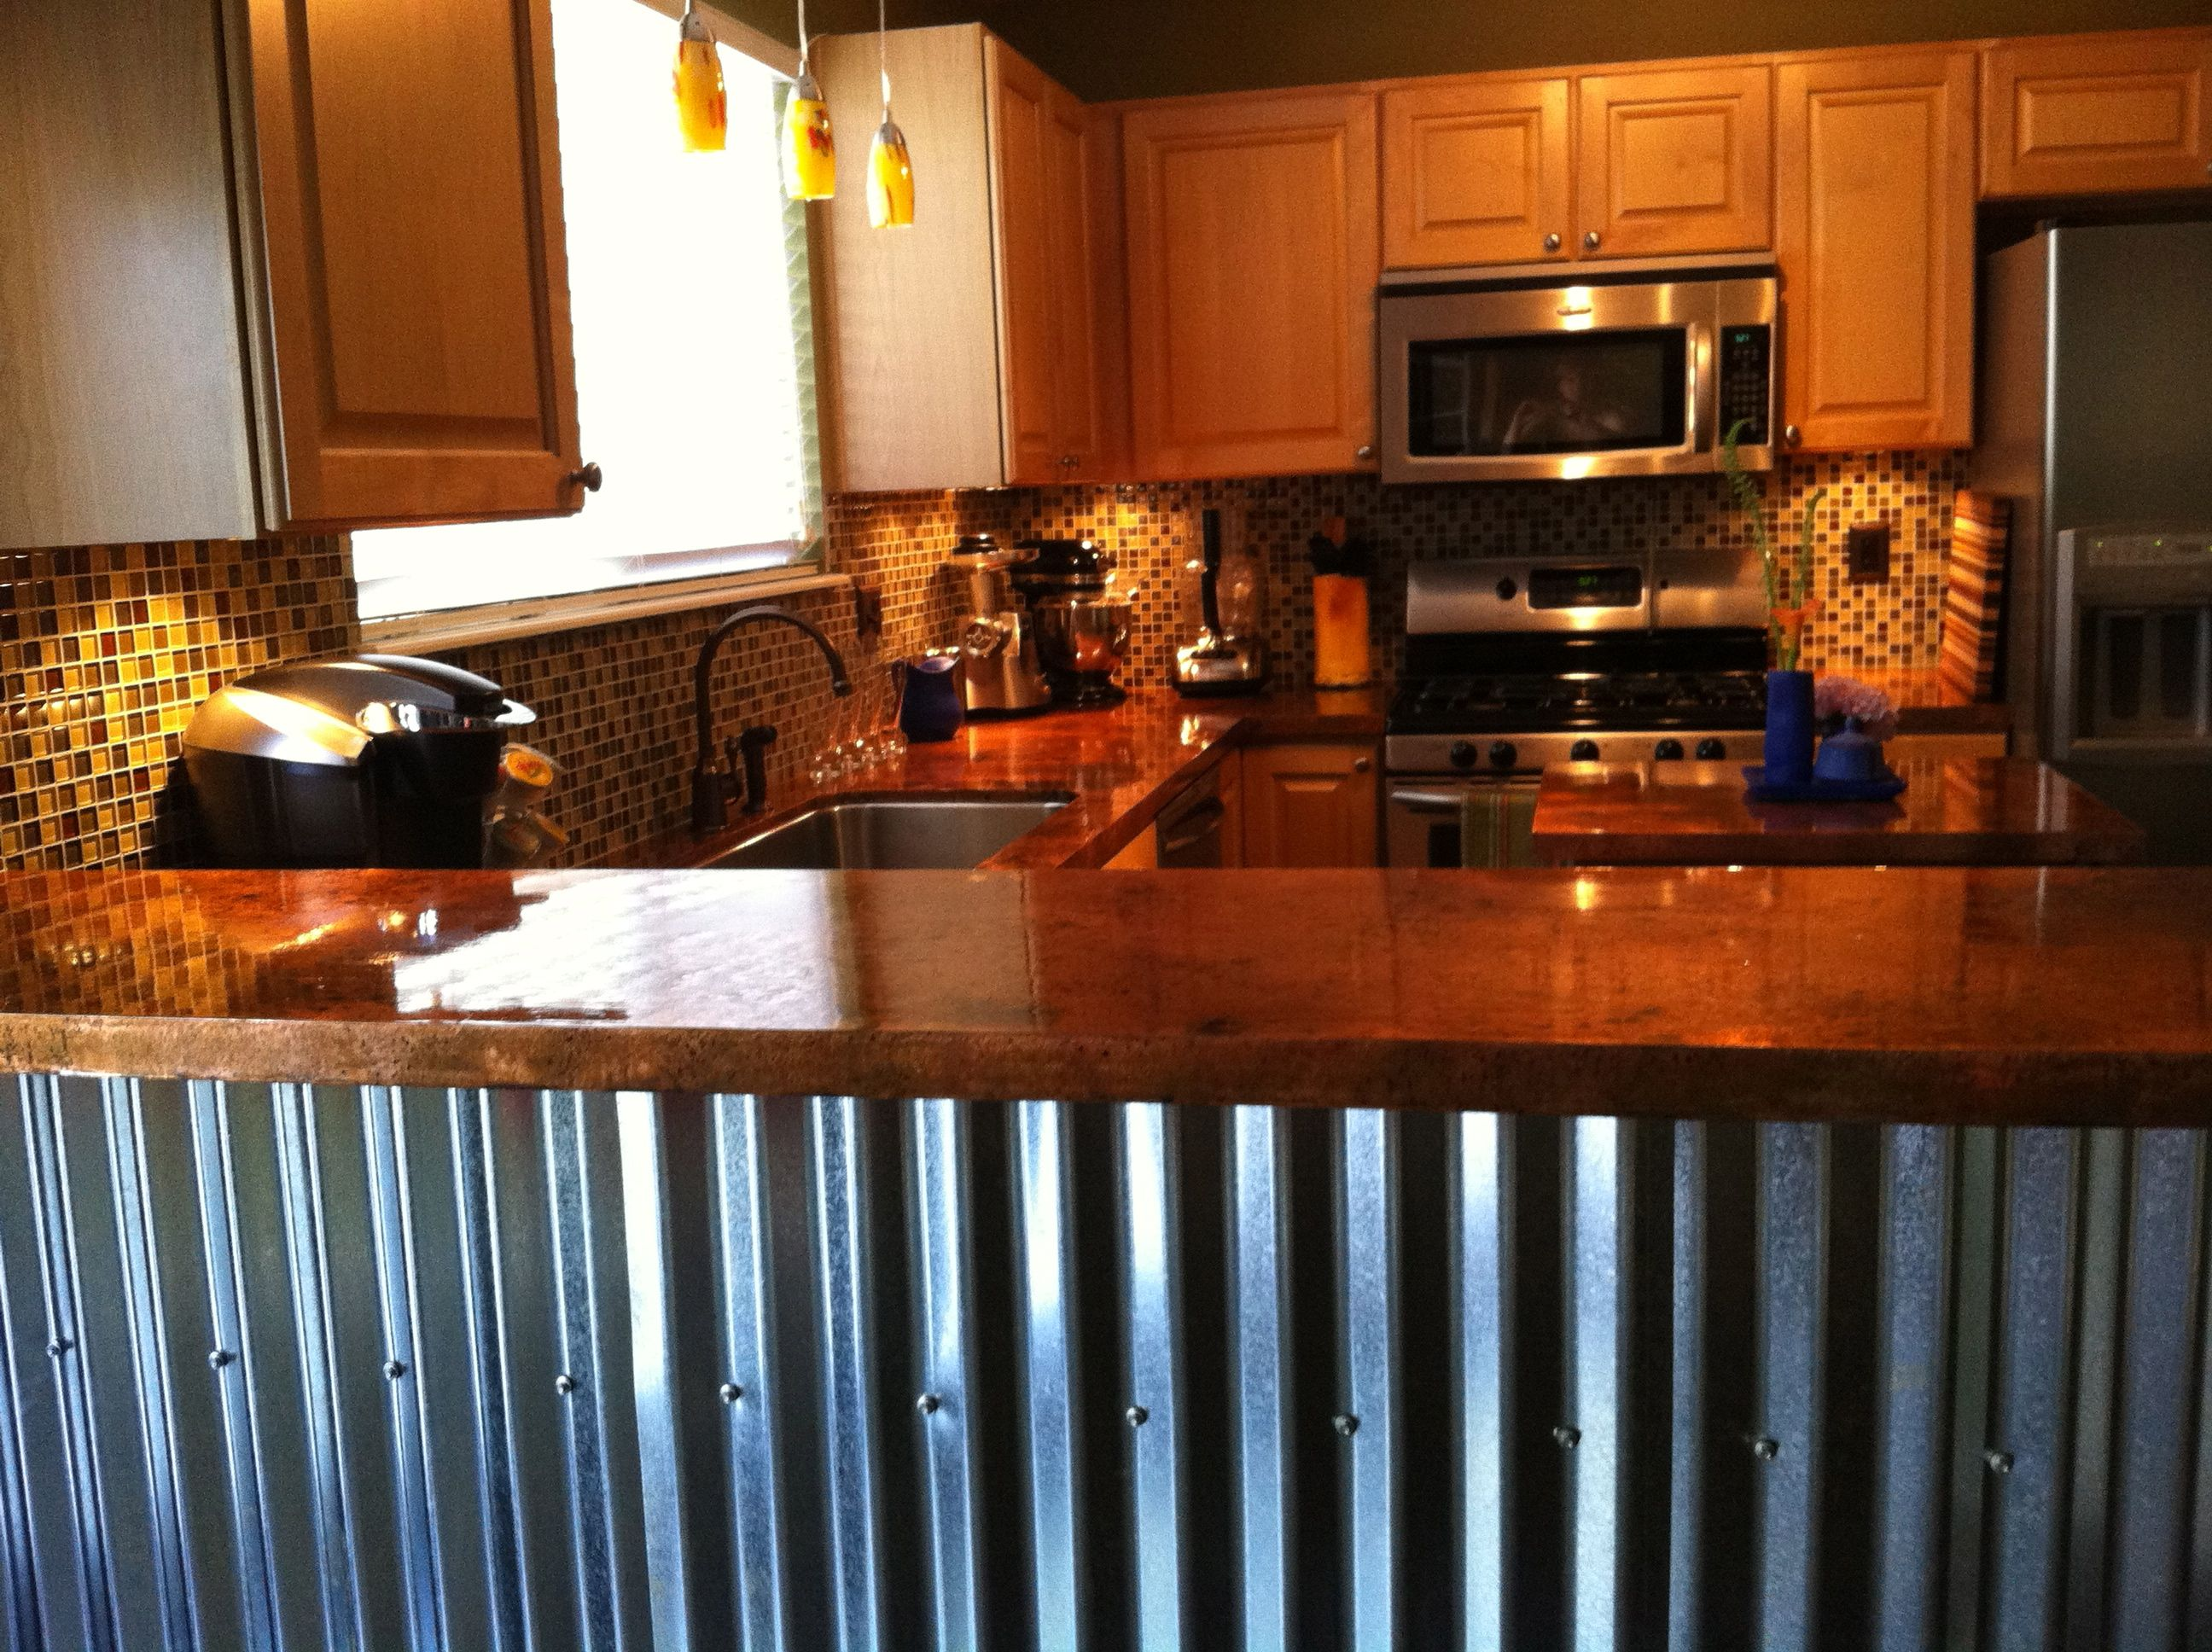 Attractive Copper Bar Top With Corrugated Metal Sheeting On The Sides.